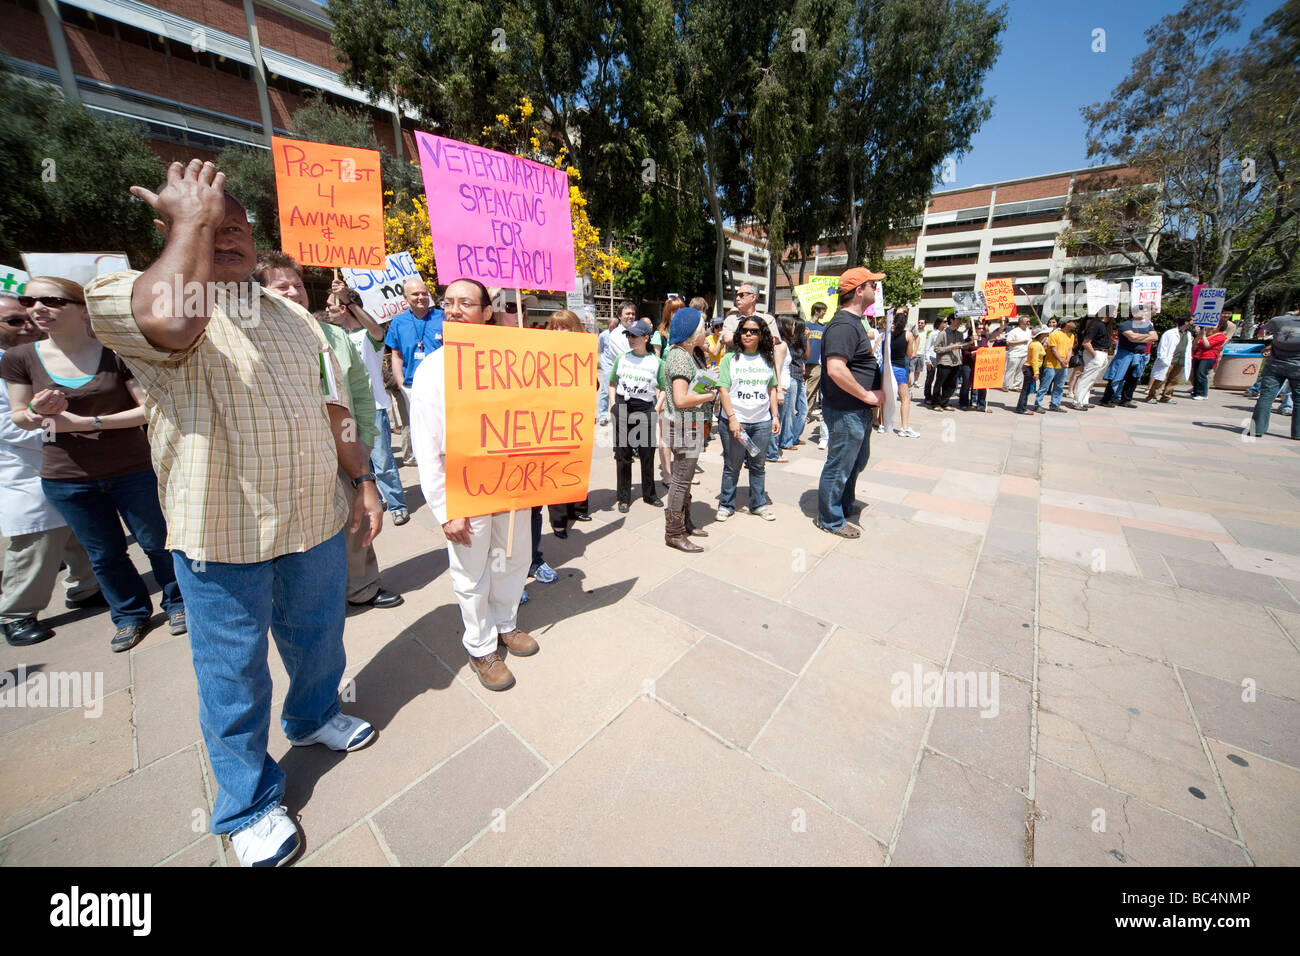 Participants of a pro research rally at UCLA defend the use of animals in biomedical research on Earth Day. - Stock Image